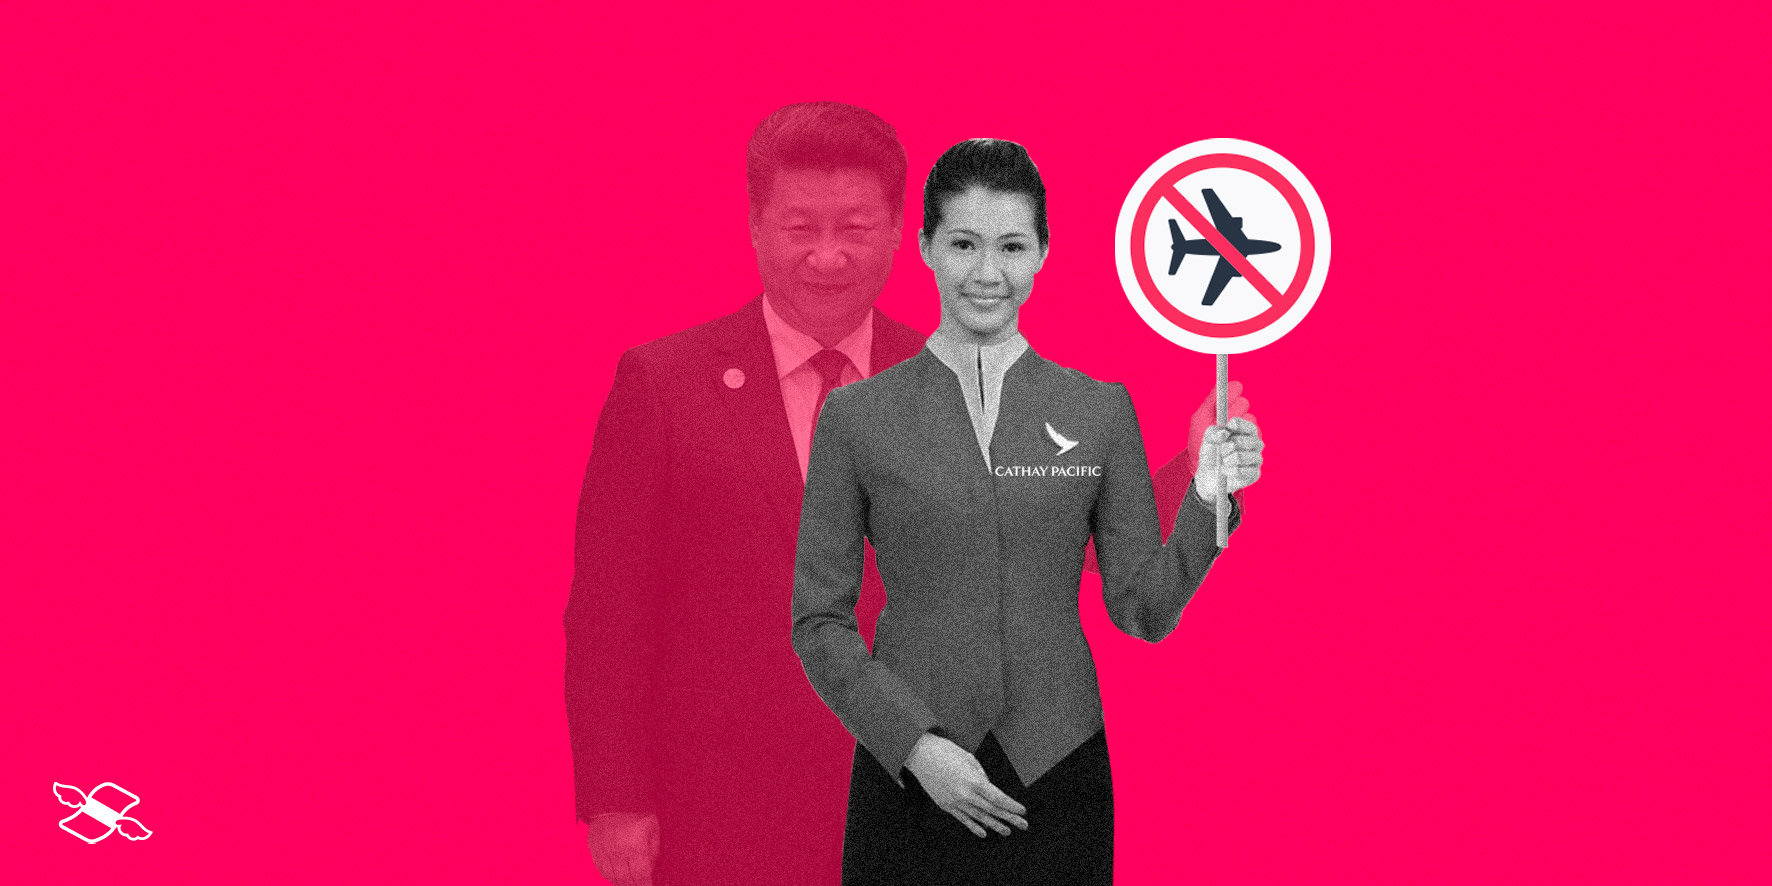 Cathay Pacific's wings clipped